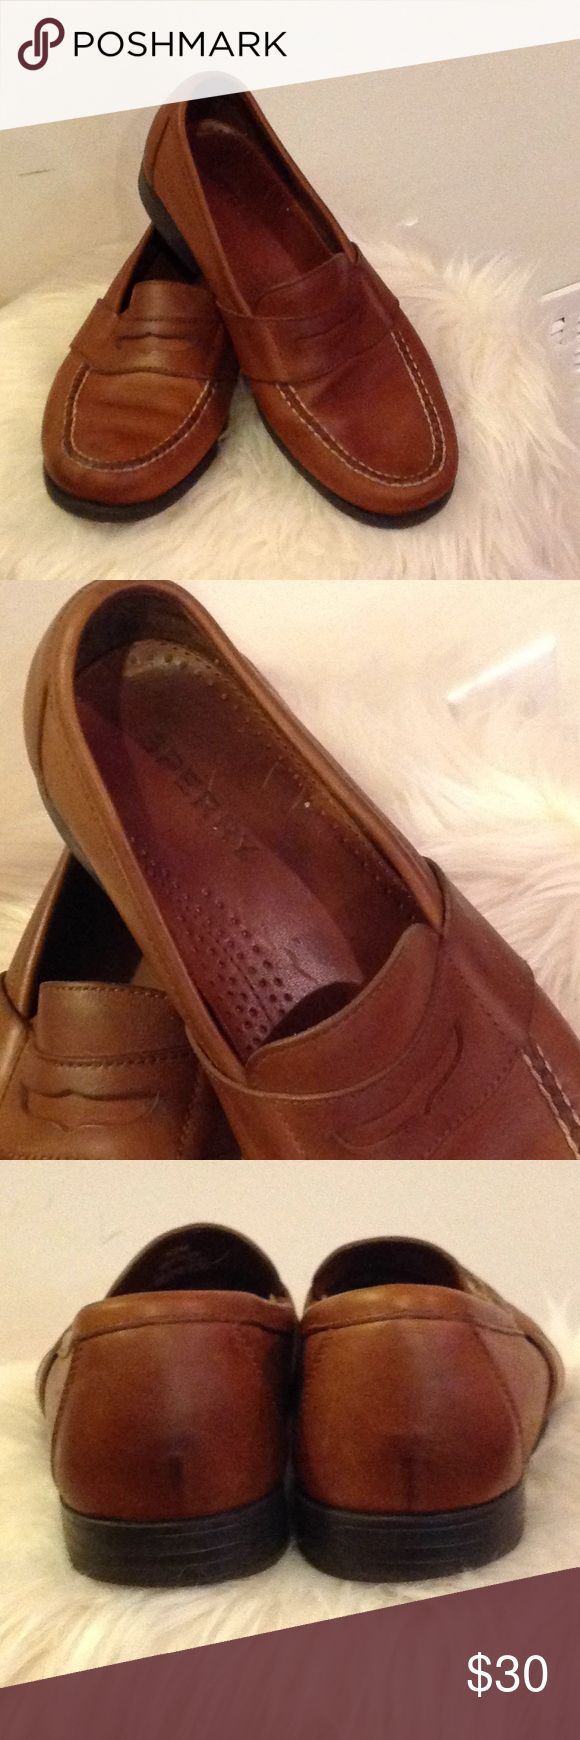 MENS SPERRY LOAFER SIZE 10 VERY NICE MENS BROWN SPERRY LOAFER. LEATHER. SIZE 10 Sperry Shoes Loafers & Slip-Ons